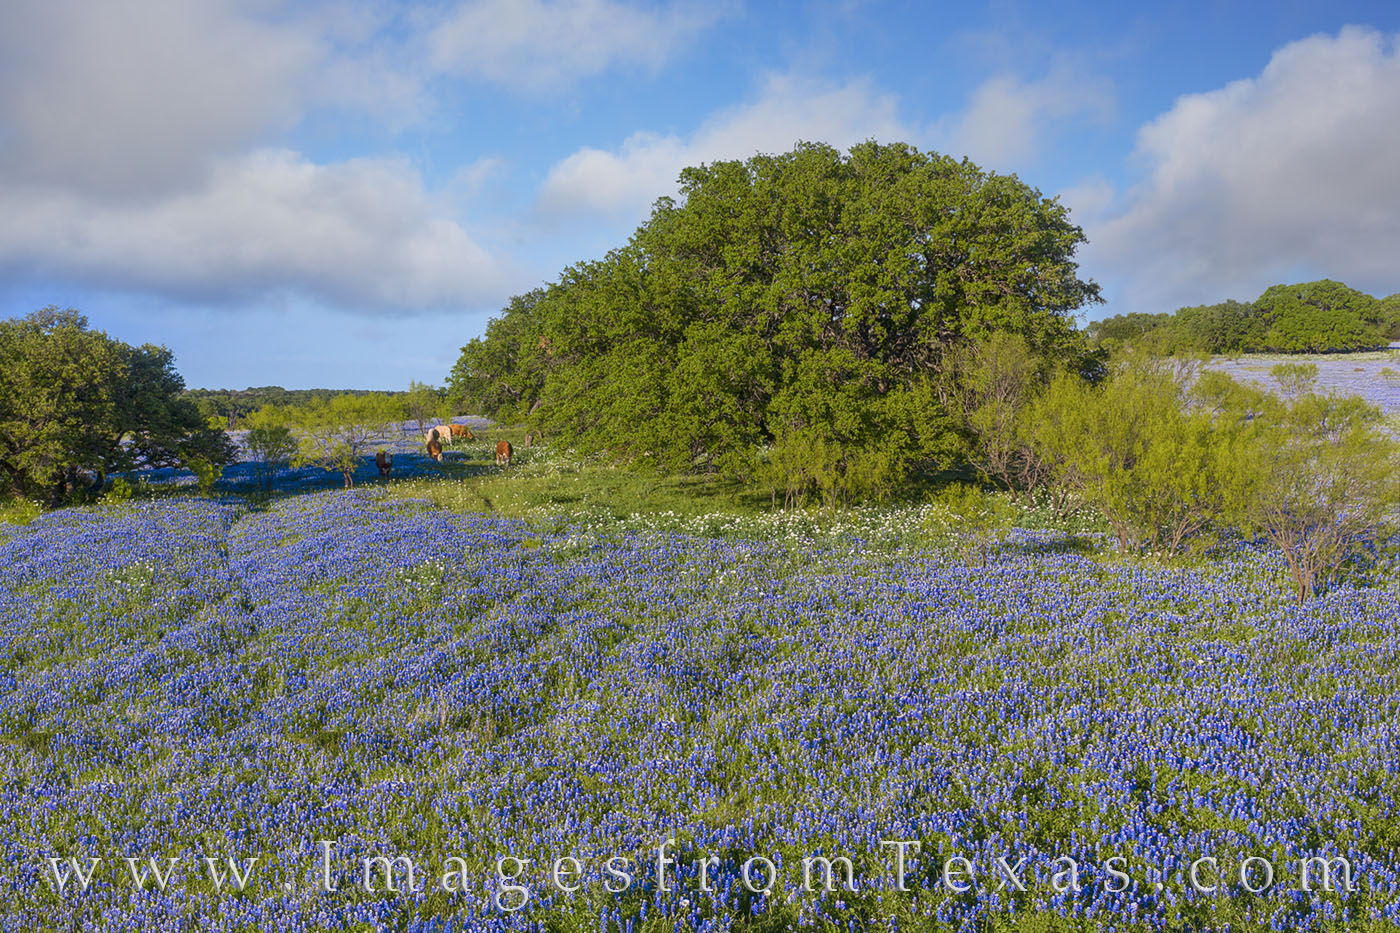 A field of bluebonnets is seen in this aerial view on a cool spring day in the late afternoon. Far away from any paved roads...